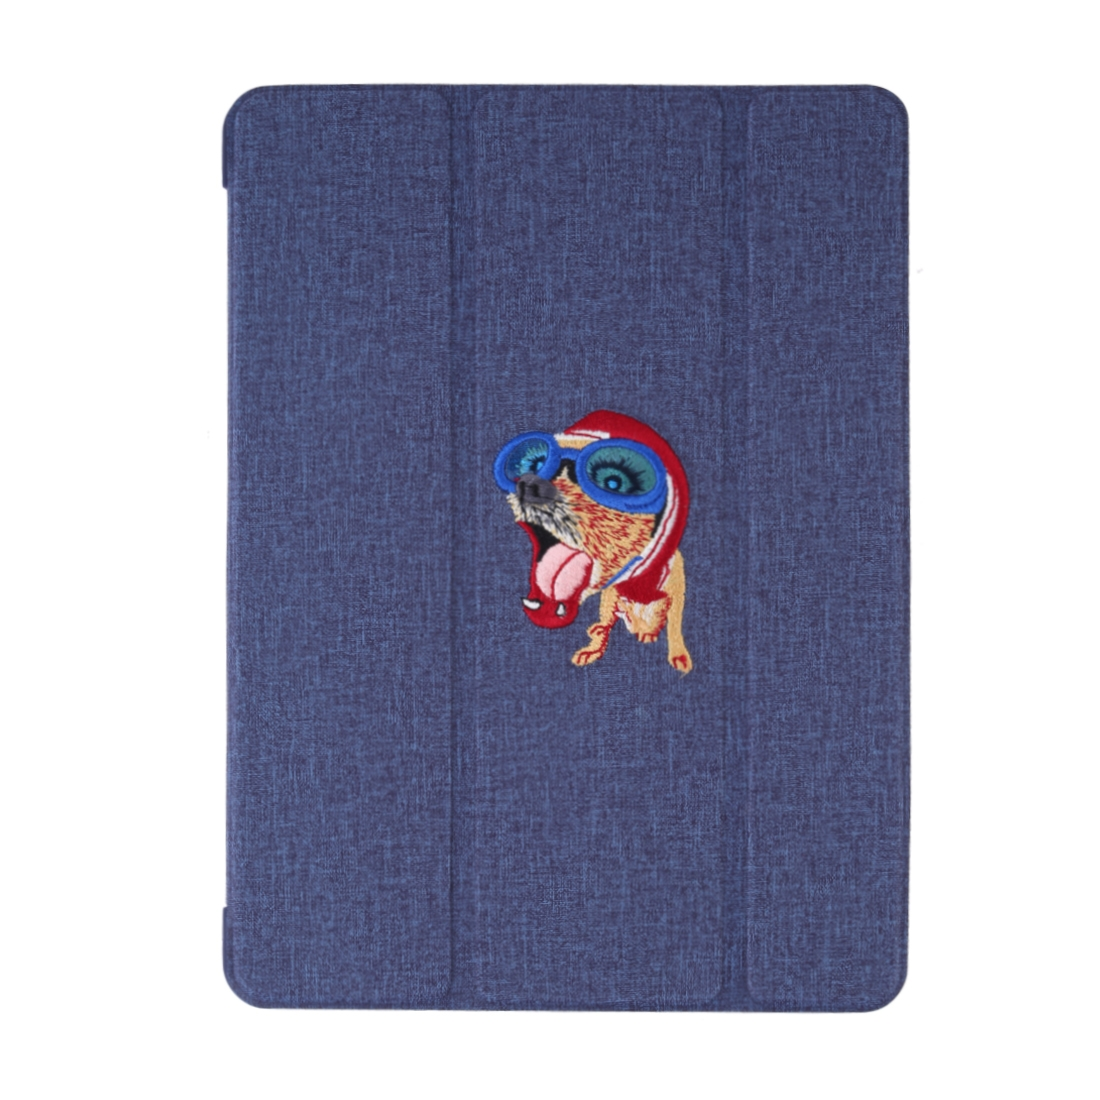 Silk Textured Leather iPad Air 2 Case (2019)/ Pro 10.5 inch, w/Tri-Fold Auto Sleep (Blue)